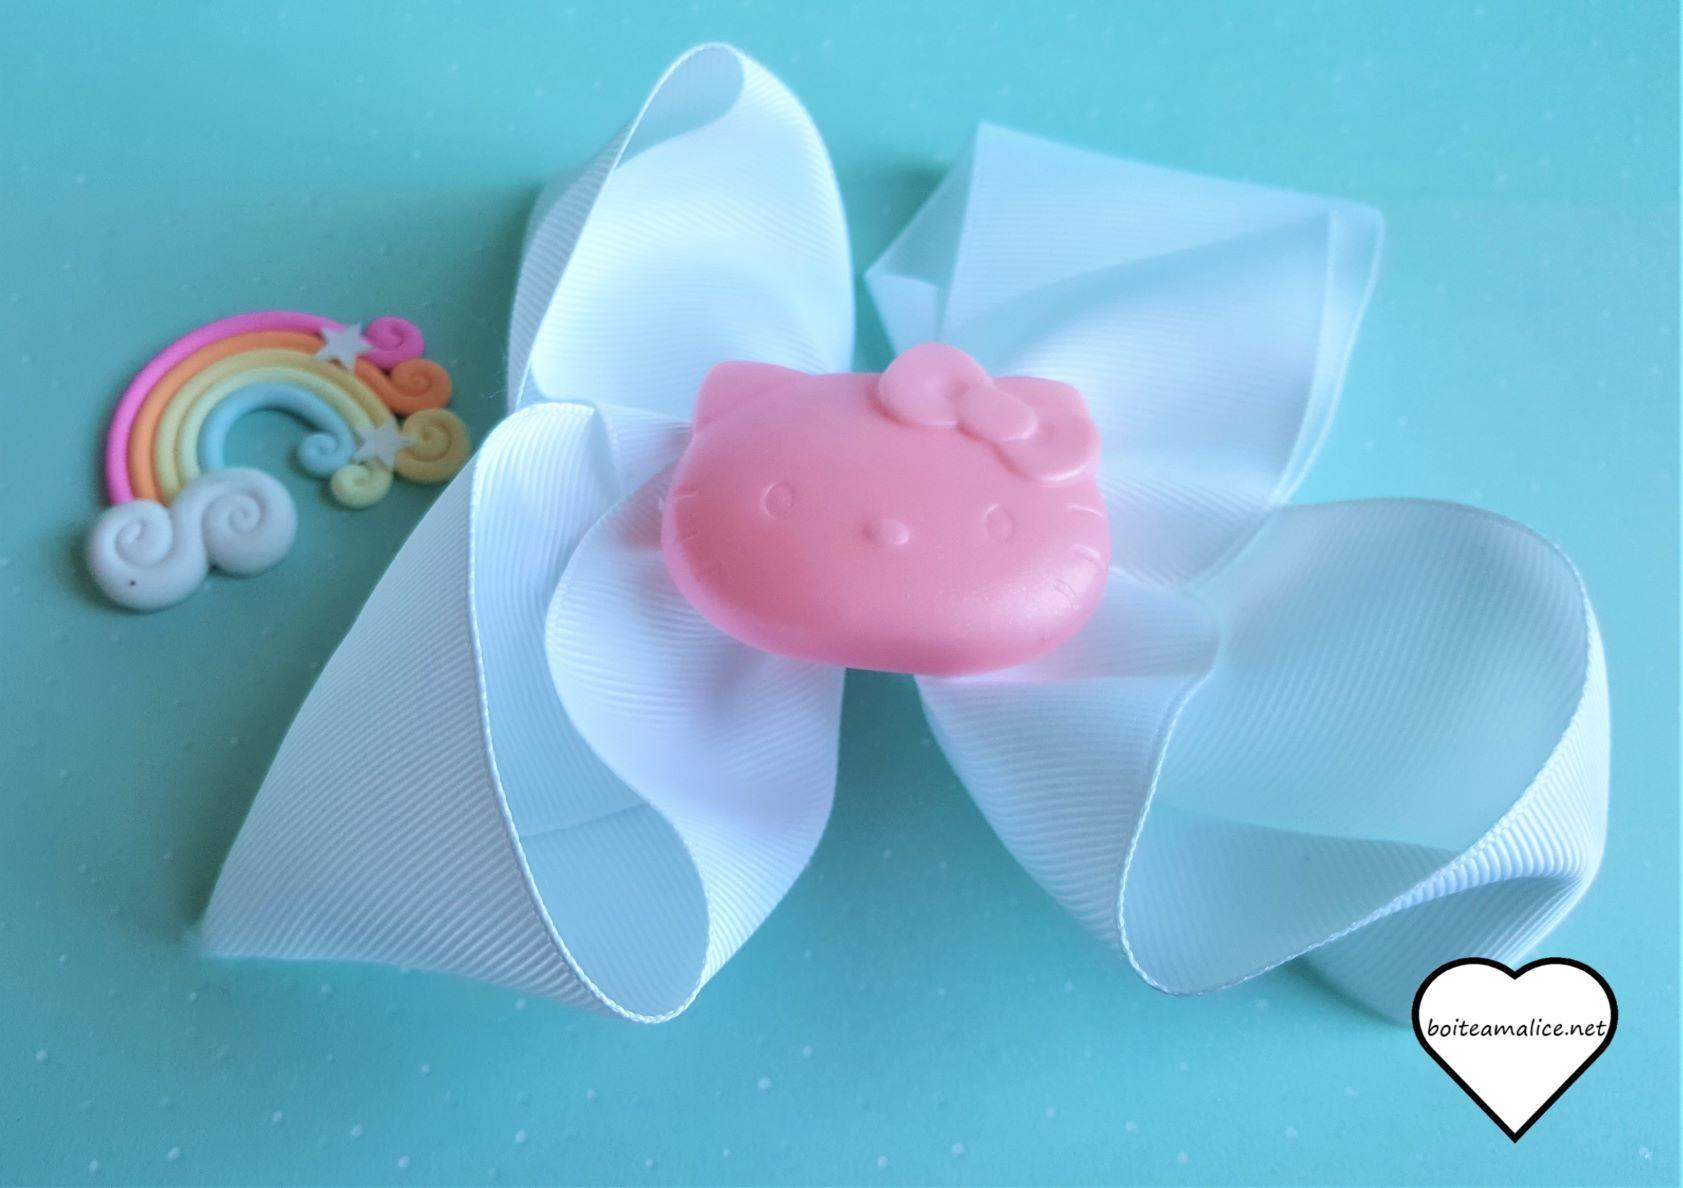 Barrette noeud blanc kawaii hello kitty